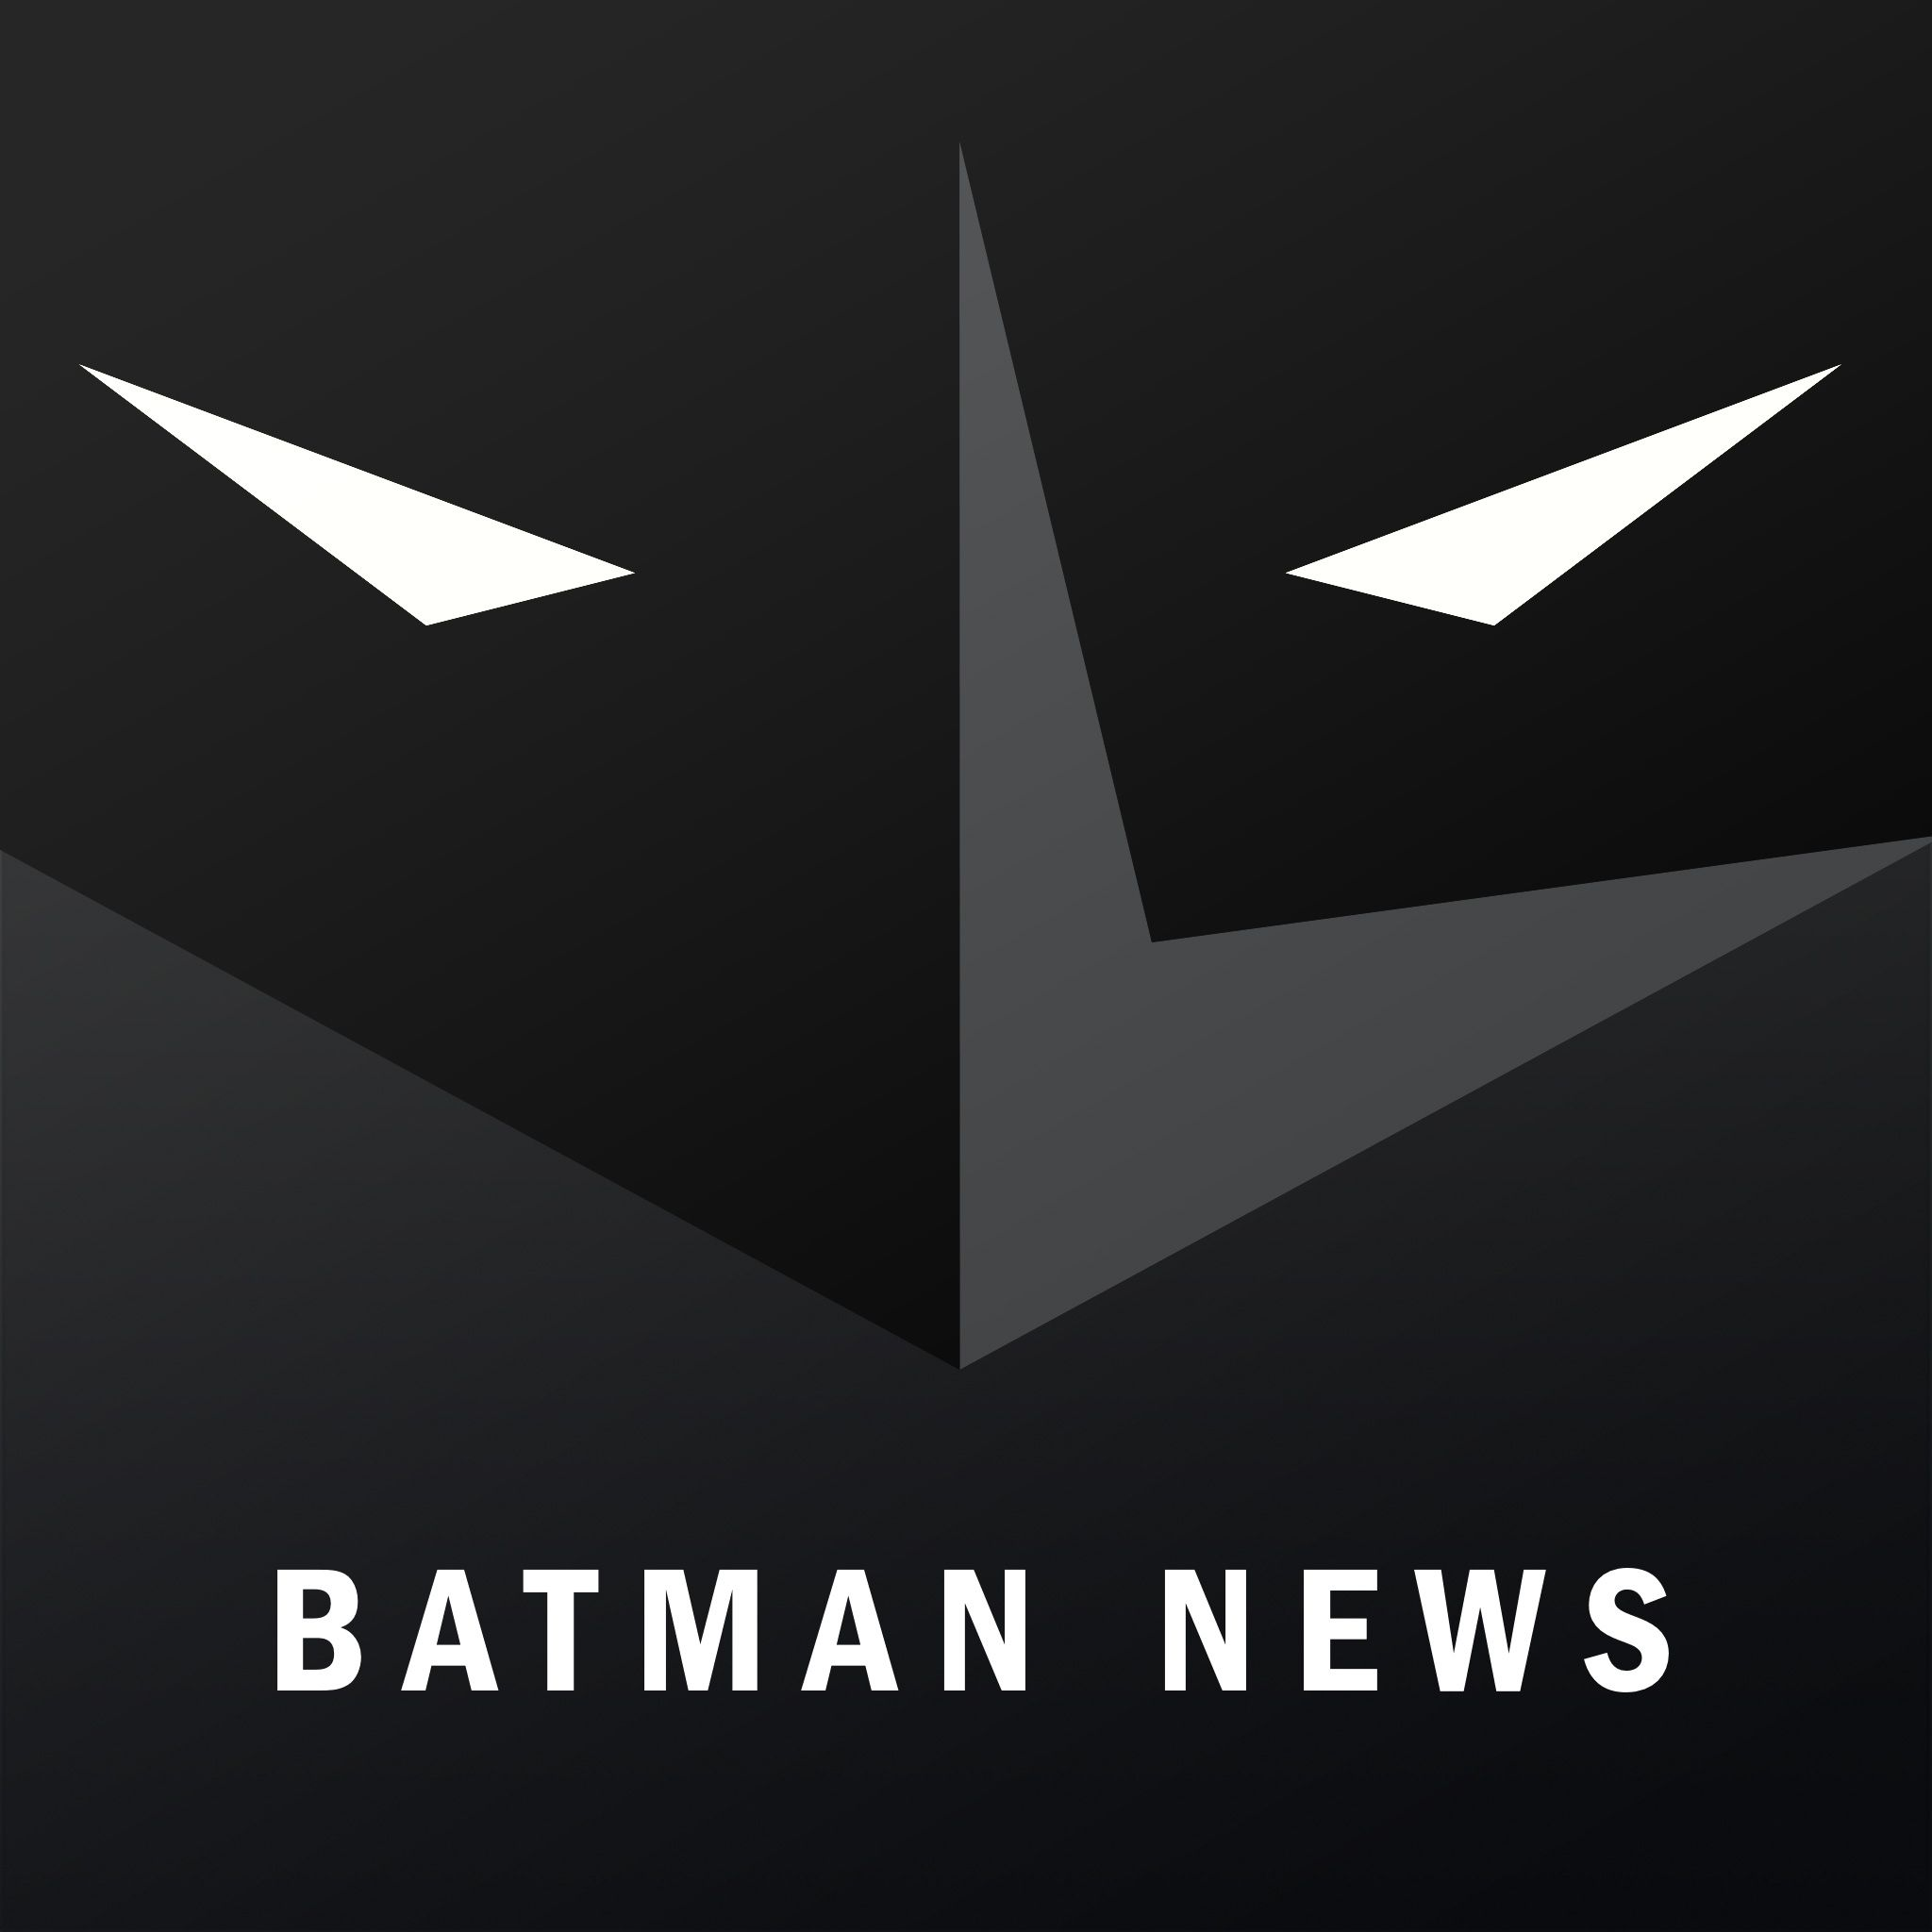 Batman News